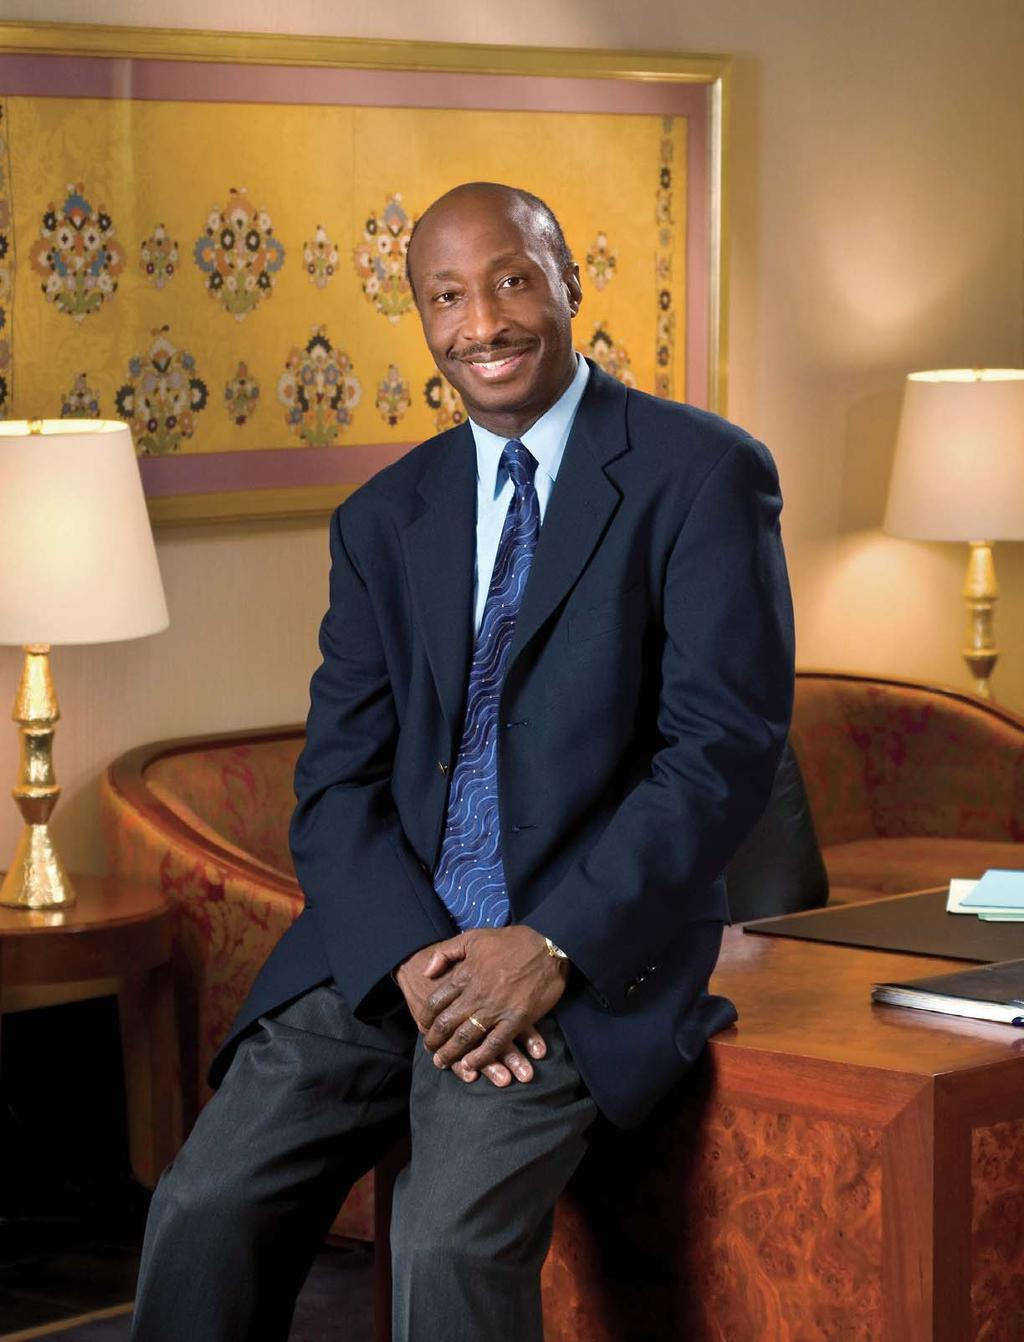 Kenneth Frazier 78 was named CEO of Merck in January.